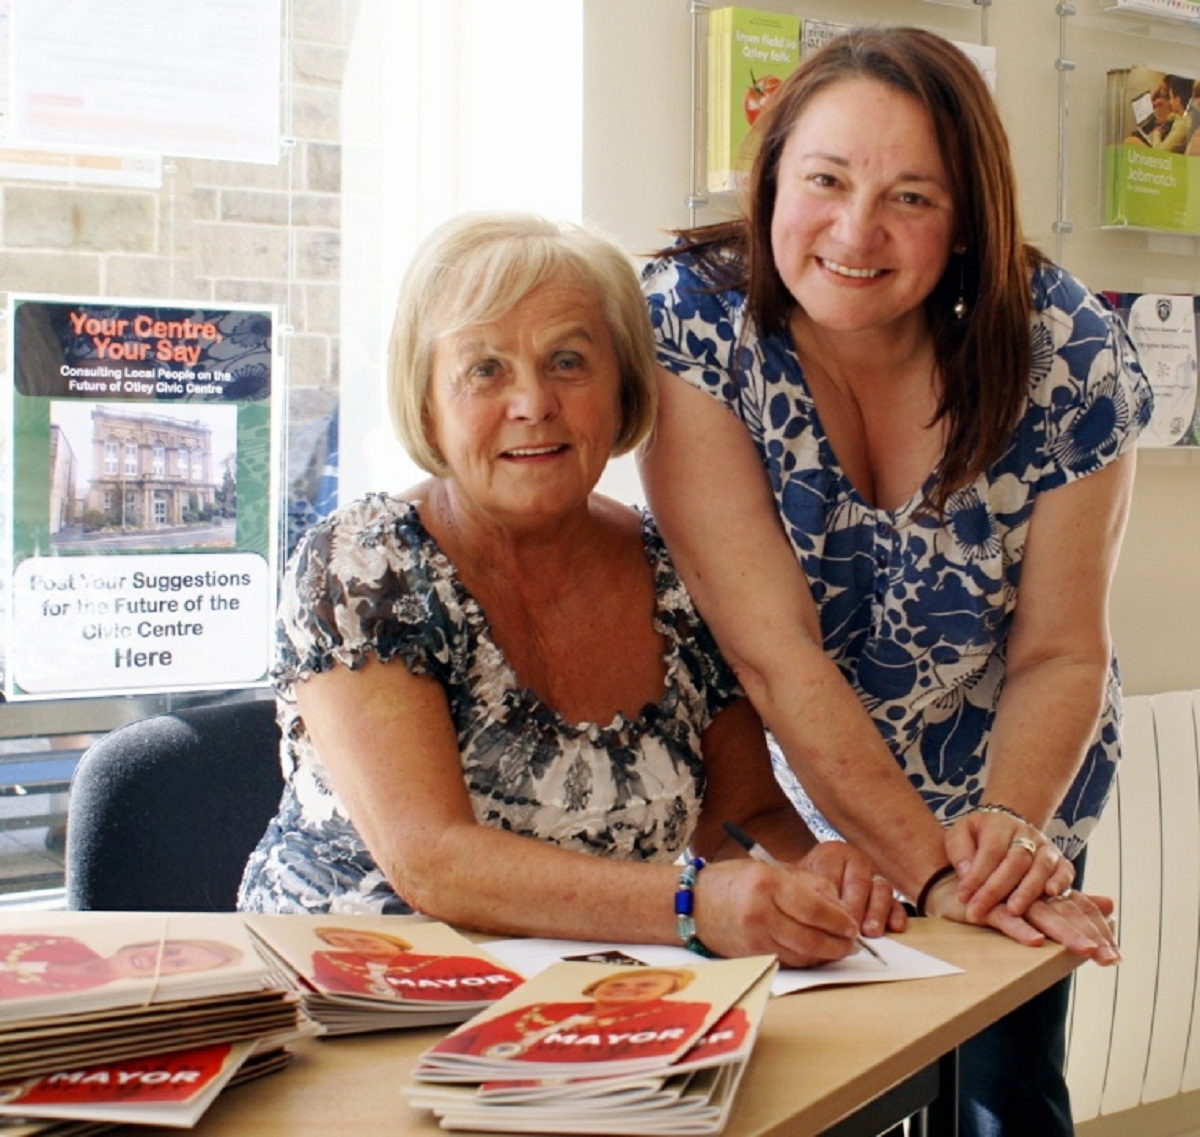 Councillor Mary Vickers (sitting) signing a copy of her new book, My Year as Mayor of Otley, with Otley Town Council executive officer Suzanne Kidger